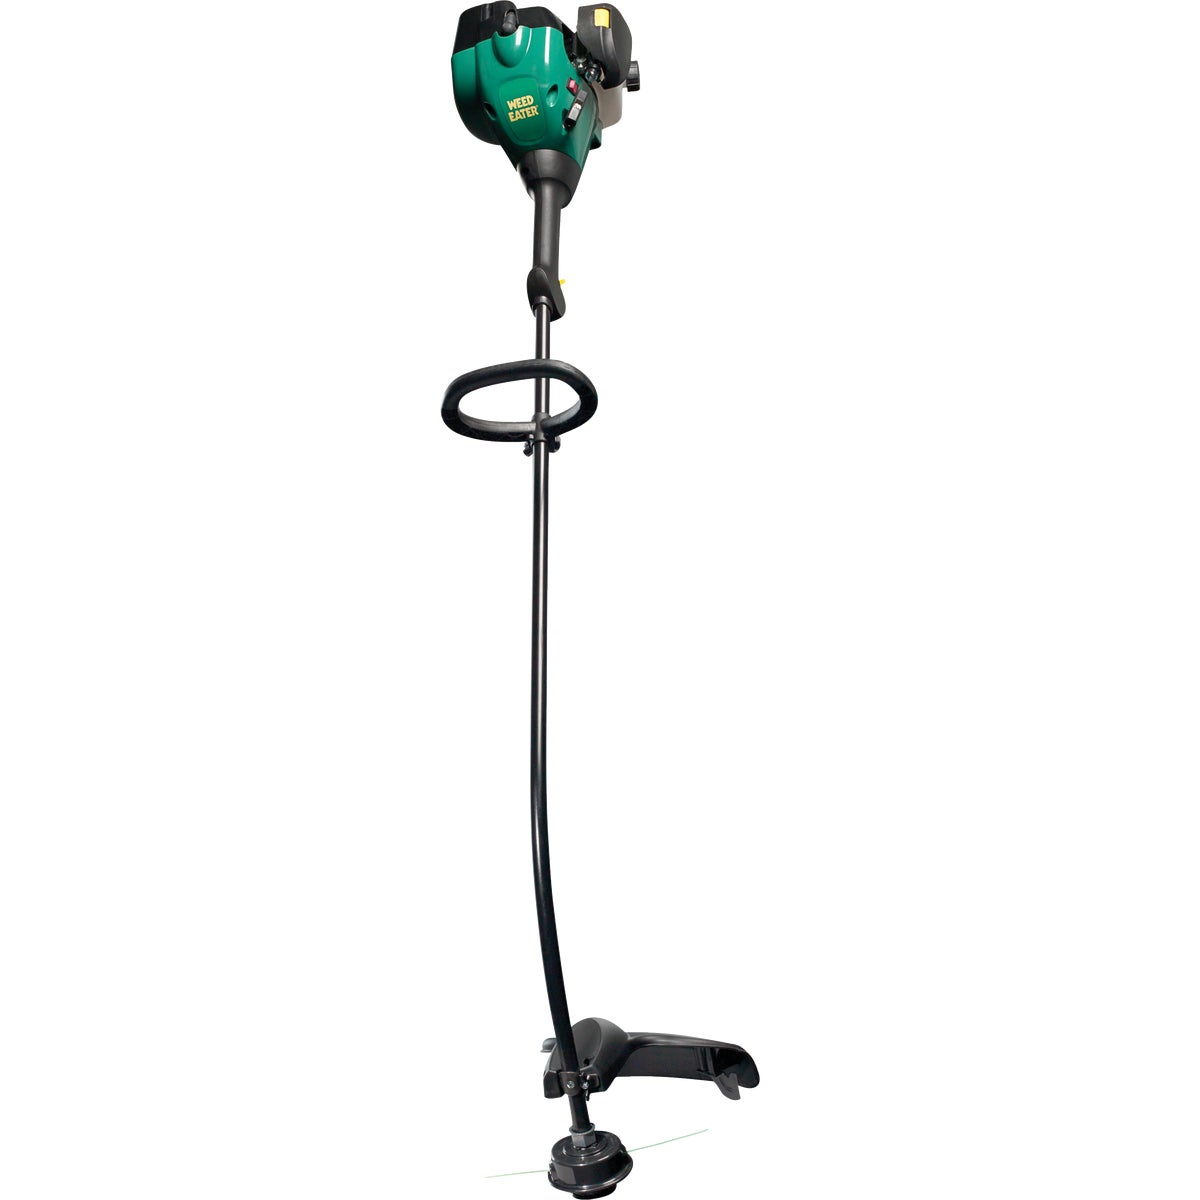 BRAND NEW Weed Eater W25CBK 16-inch 2-cycle 25cc Curved